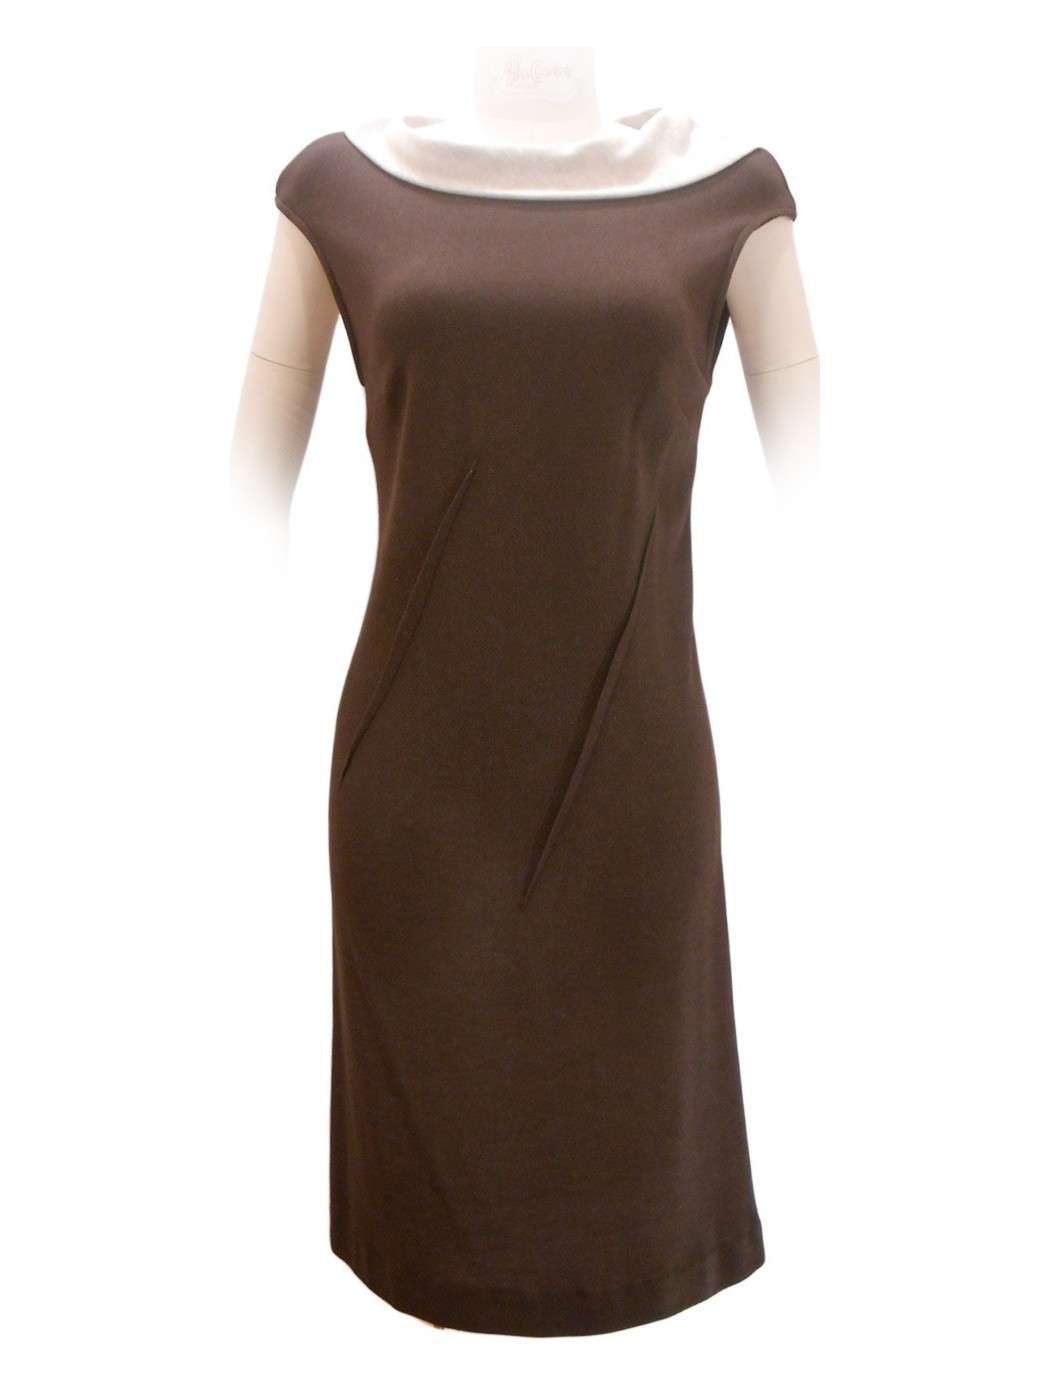 Two-coloured sheath dress